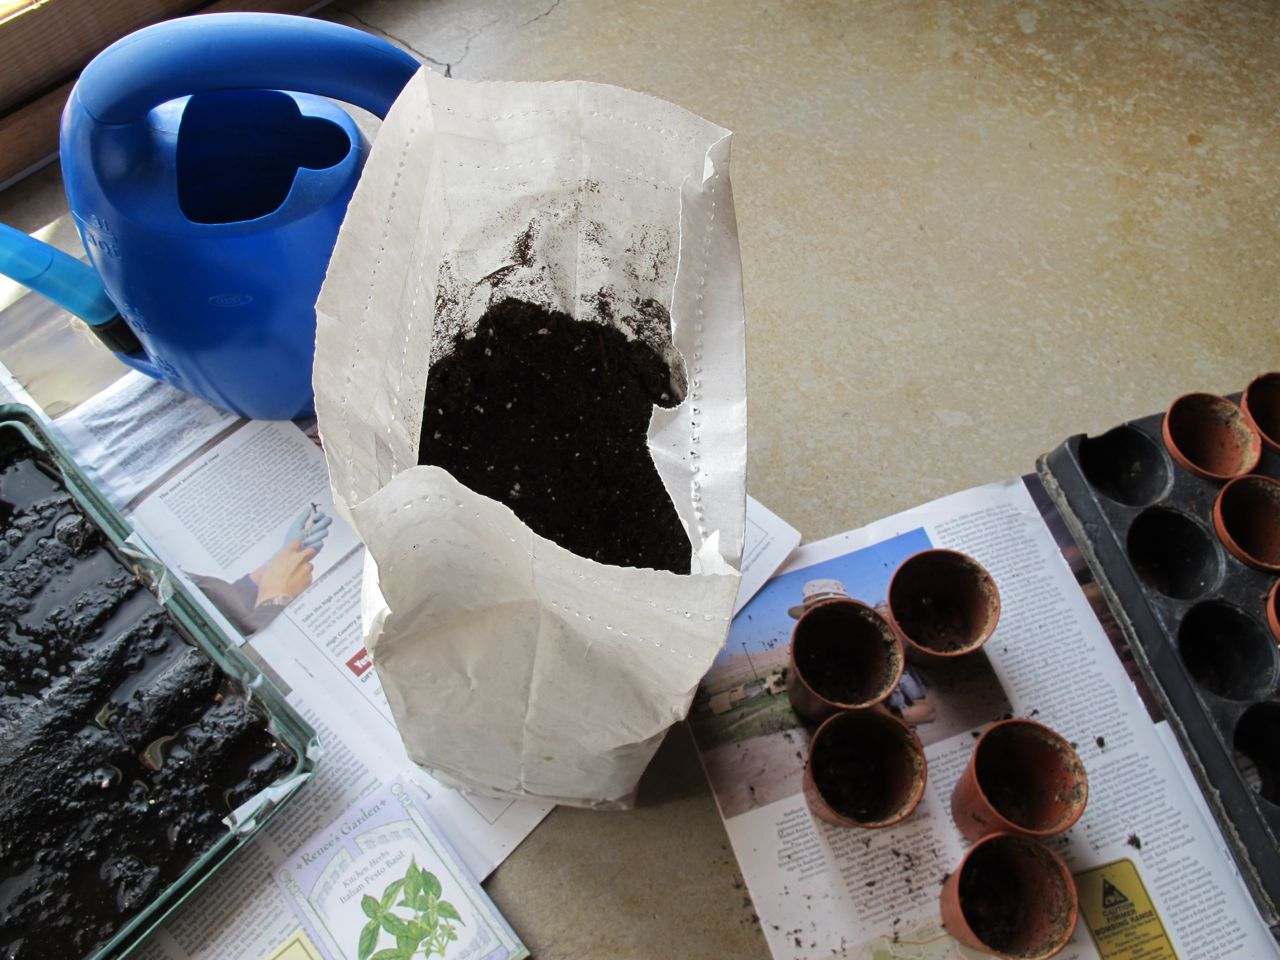 Organic seed-starting soil, pots, and the flat with its water-wicking mat to help the pots stay moist.